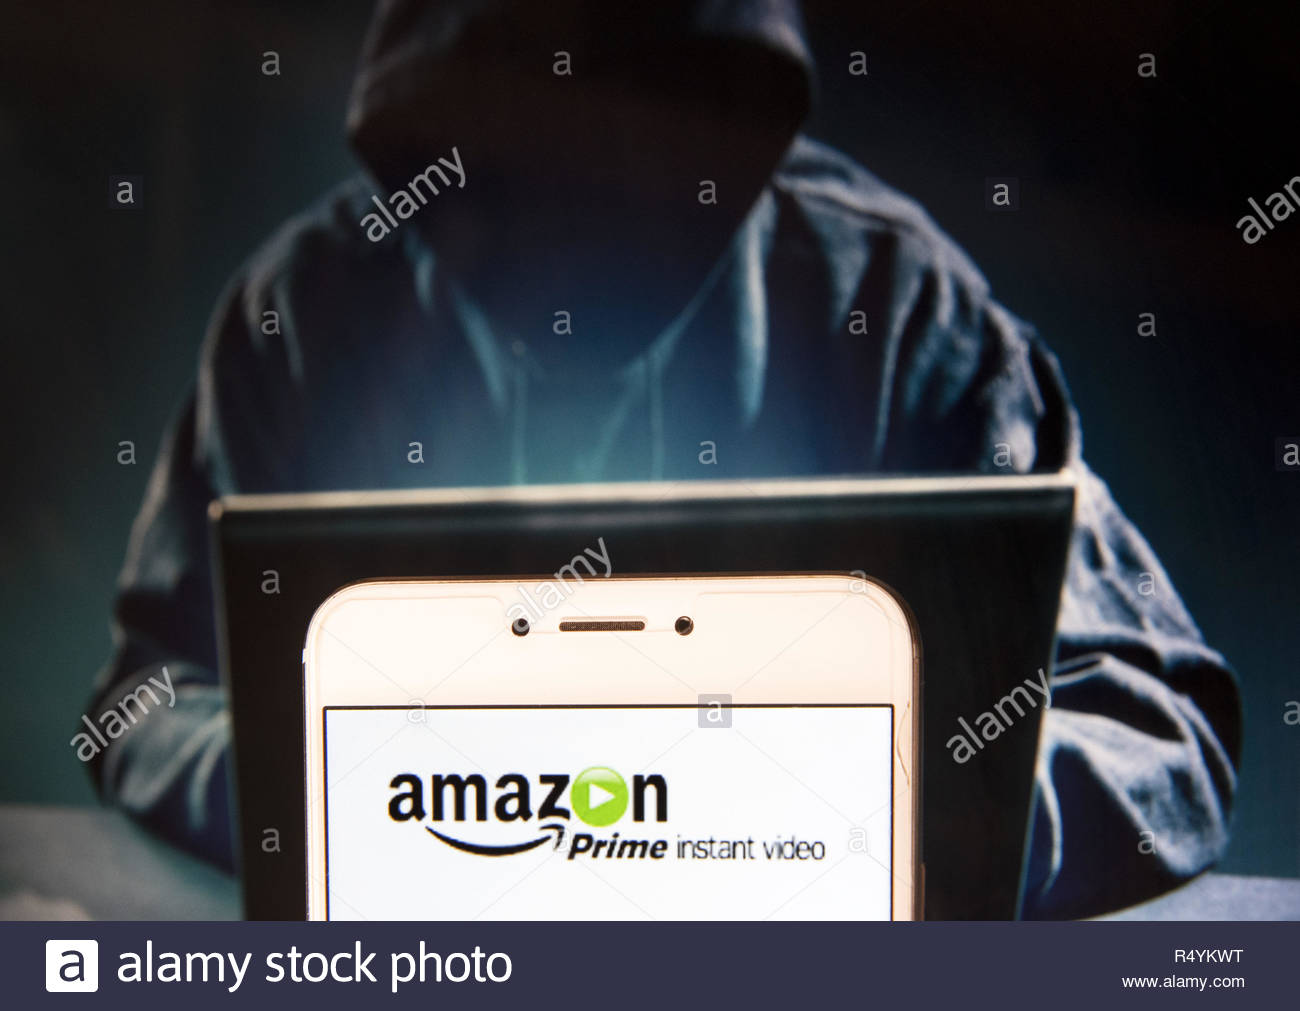 hong kong china 22nd nov 2018 american internet video on demand service owned by pany prime logo is seen on an android mobile device with a figure of hacker in the background credit miguel candelasopa imageszuma wirealamy live news R4YKWT